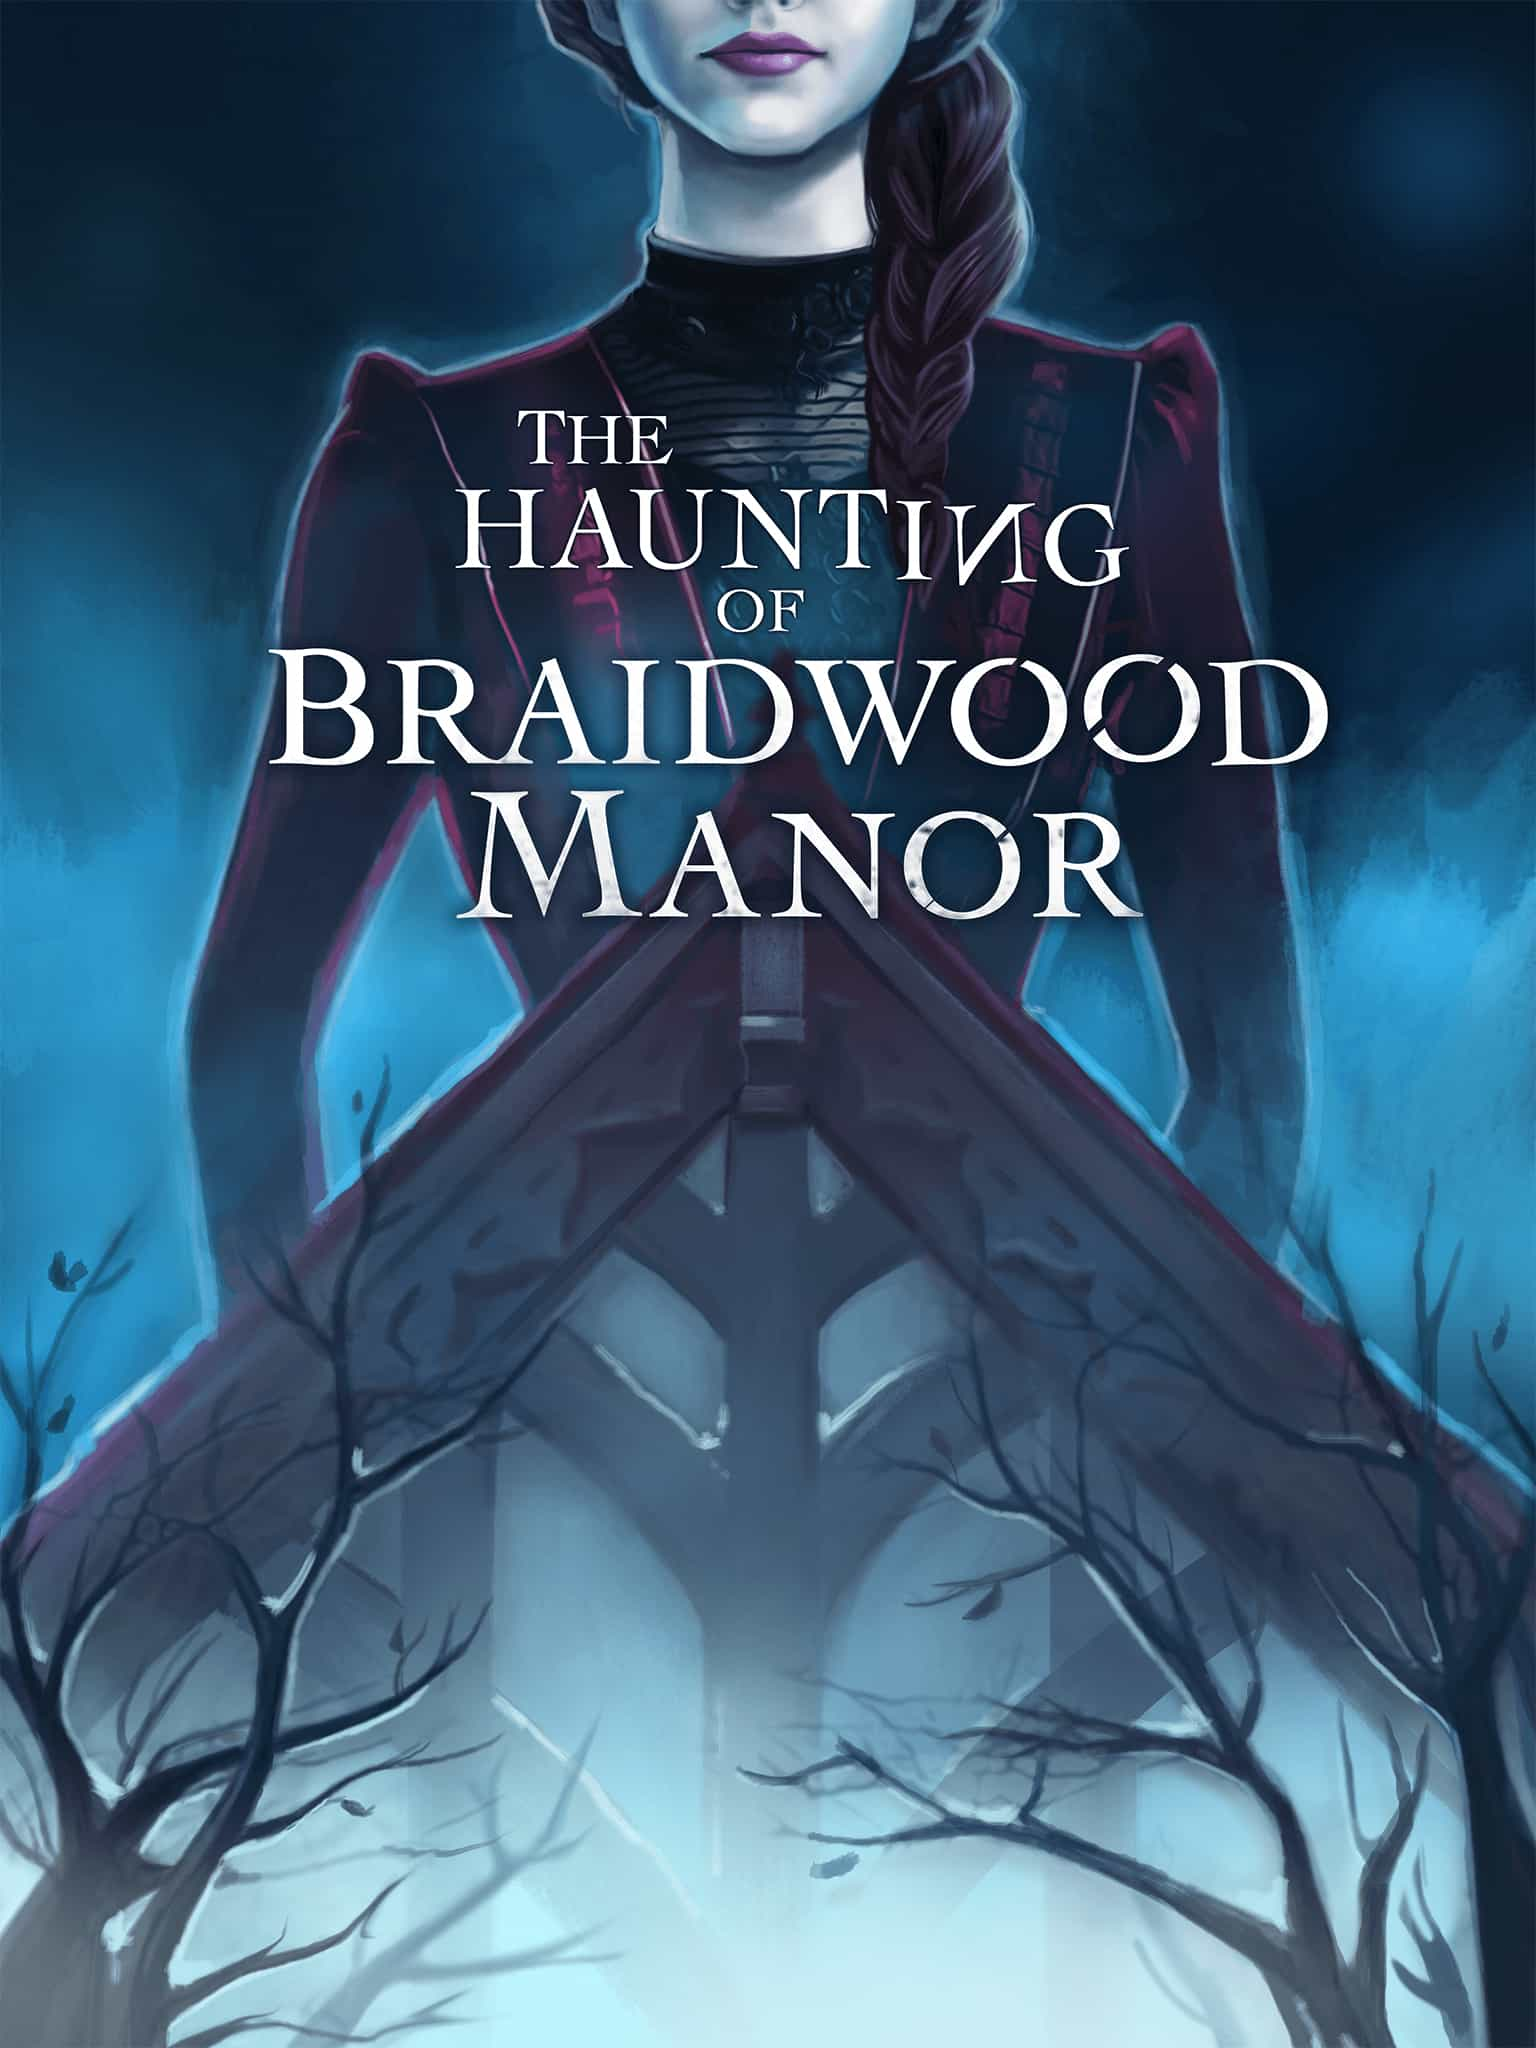 The Haunting of Braidwood Manor Choices